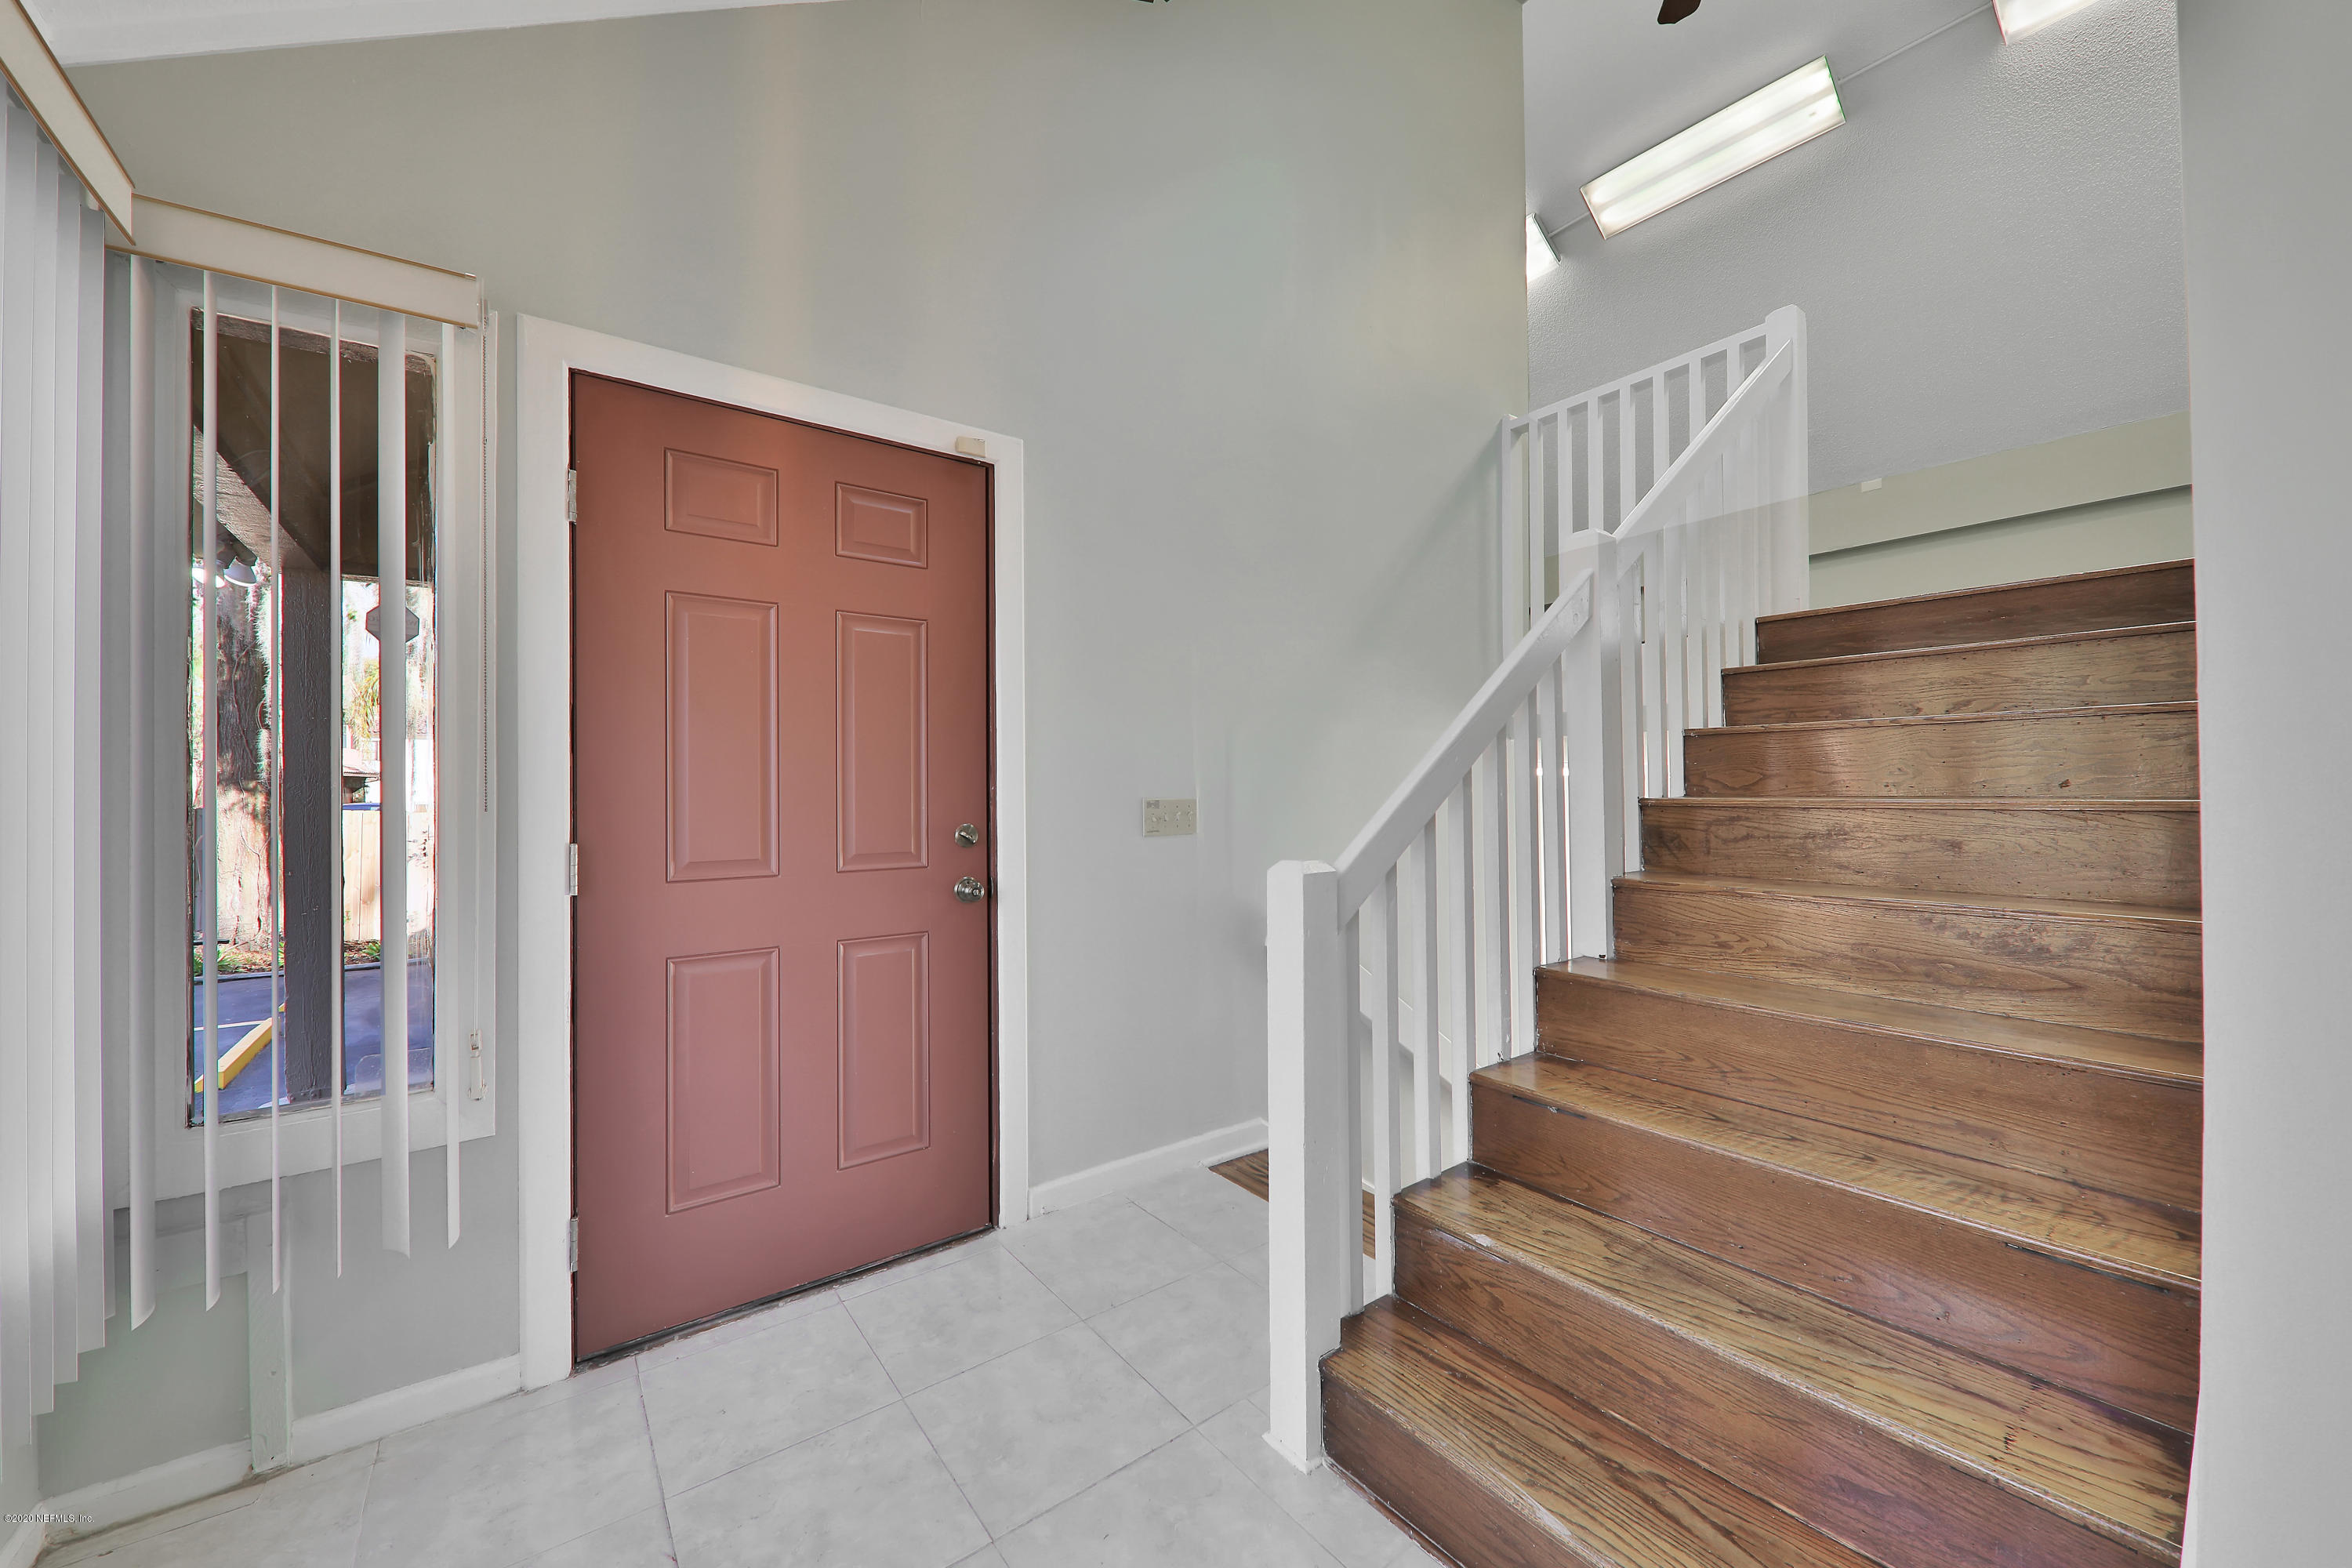 Image 4 of 35 For 4043 Baymeadows Rd